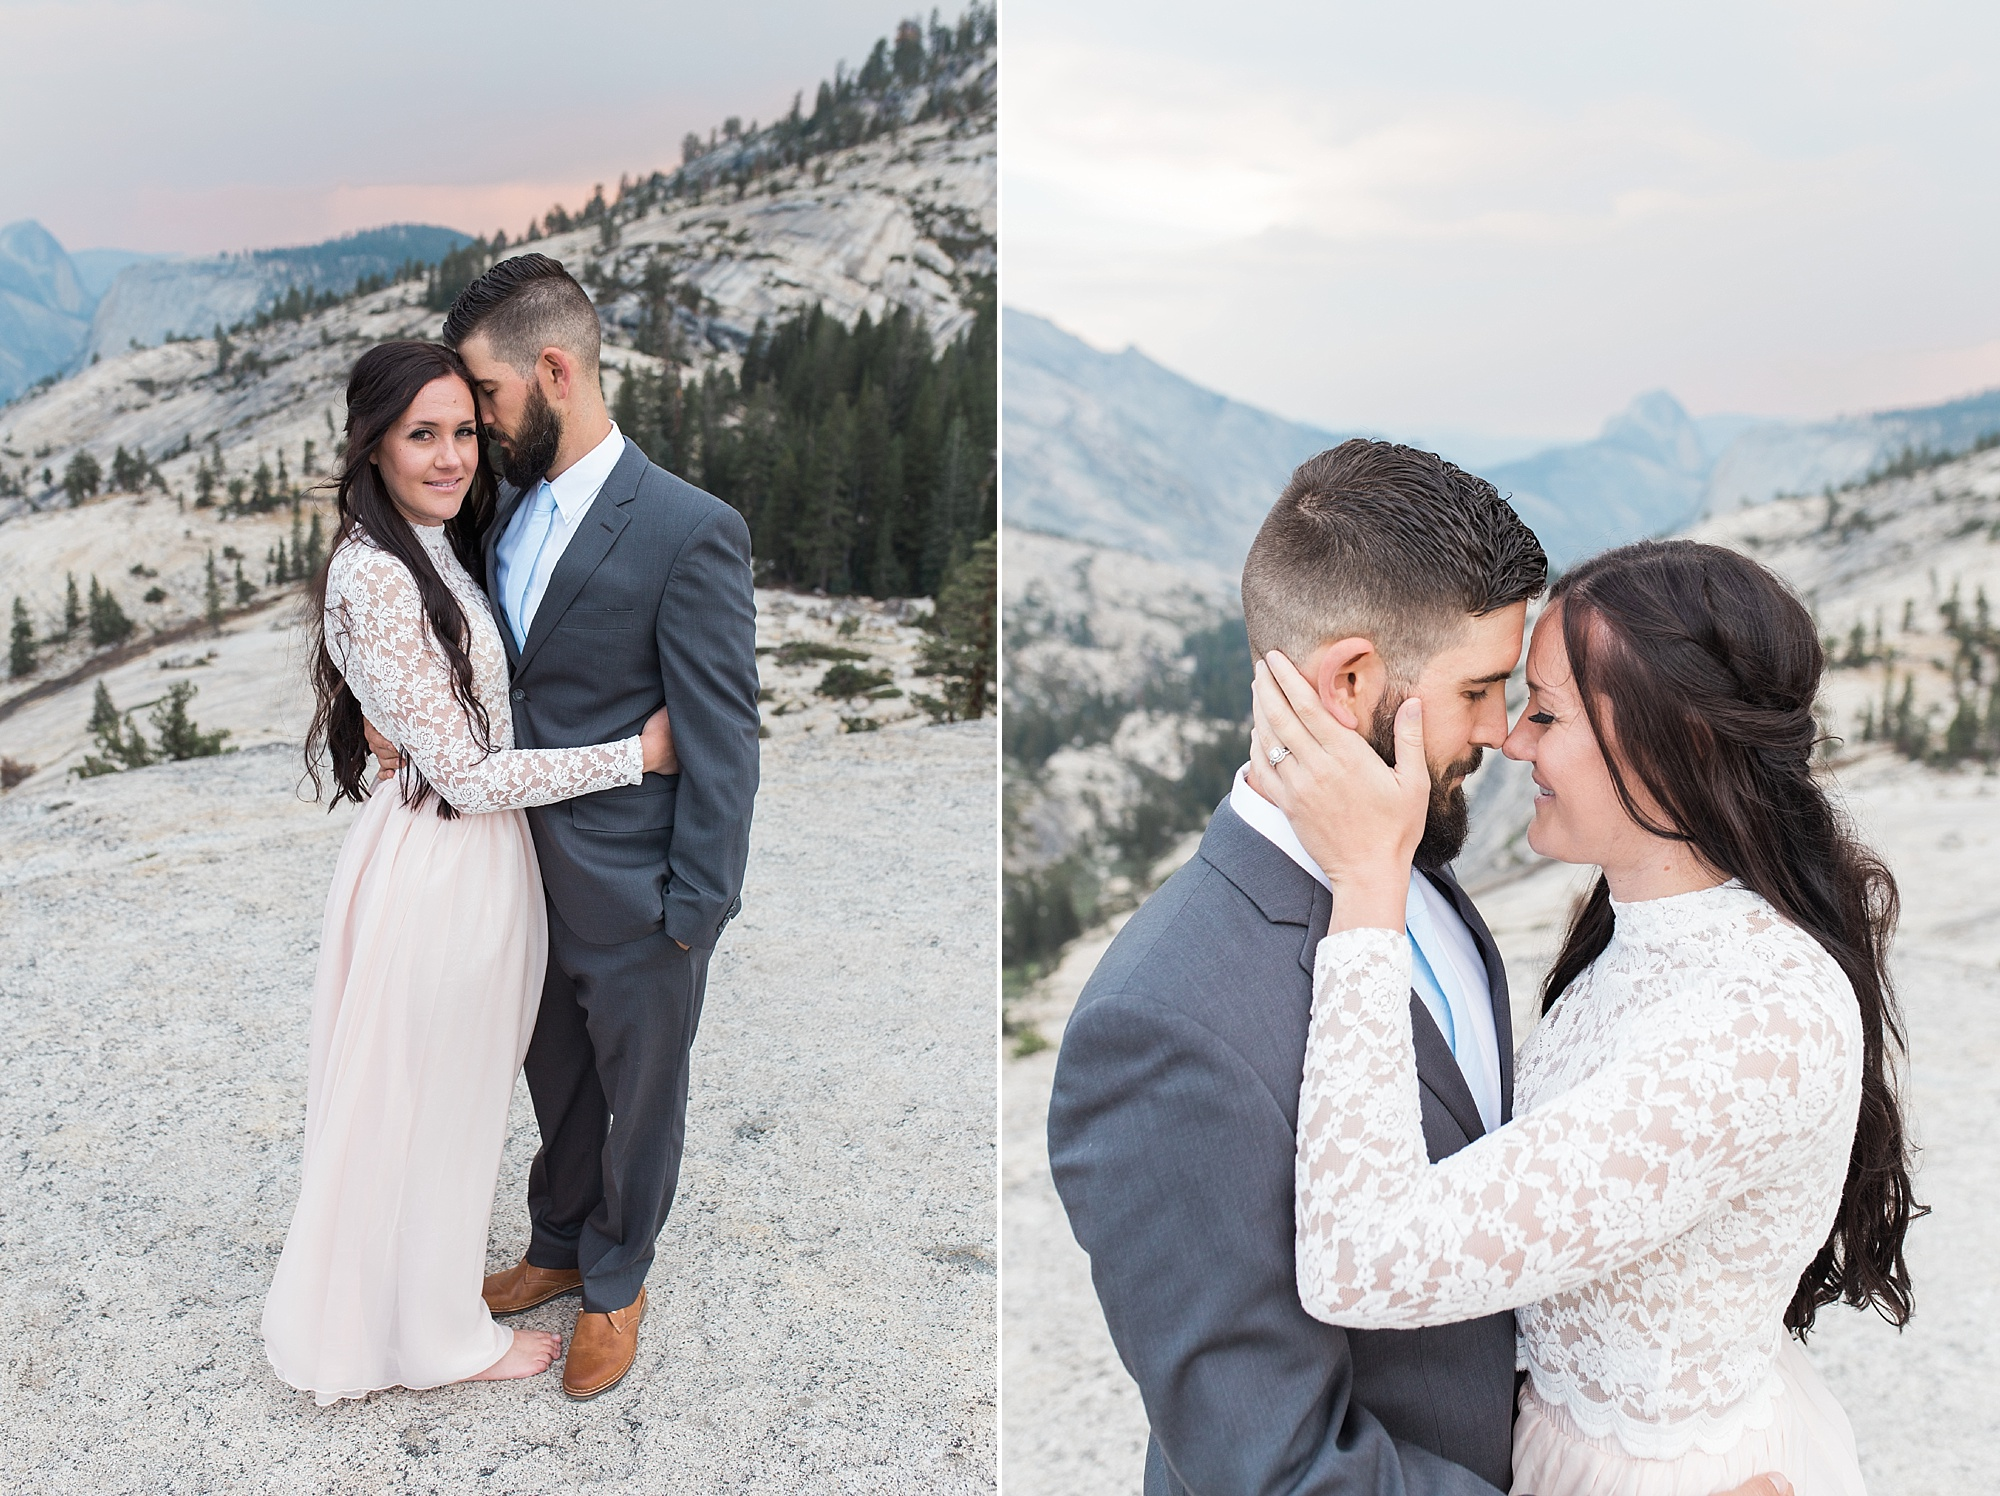 Ashley Baumgartner Photography & Calligraphy Yosemite Vow Renewal featured on 100 Layer Cake_0008.jpg